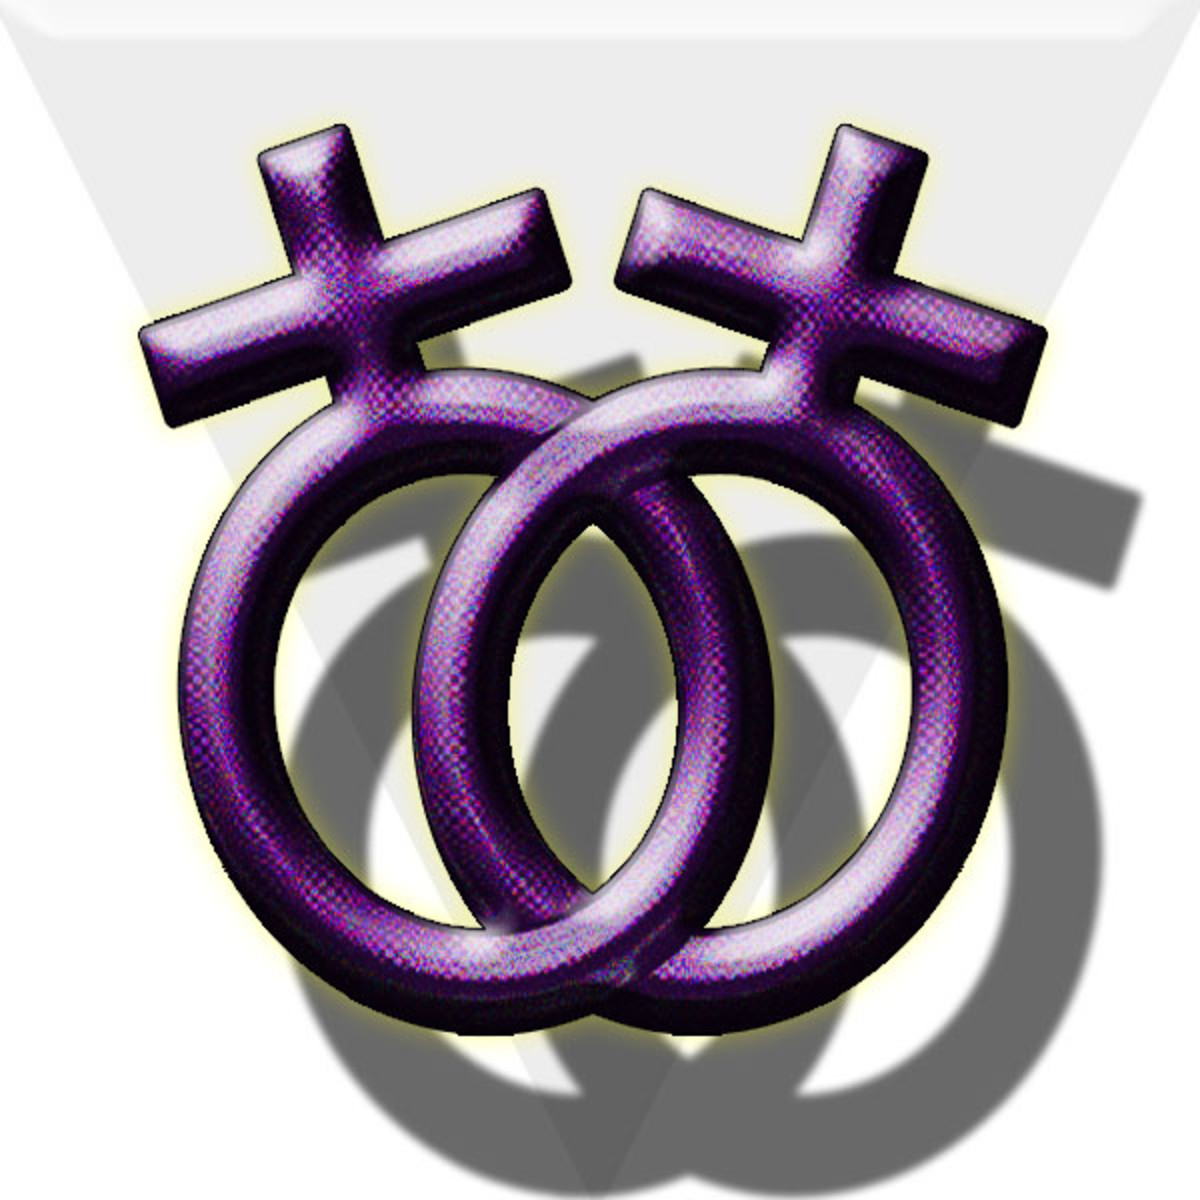 Most commonly recognized lesbian symbol.